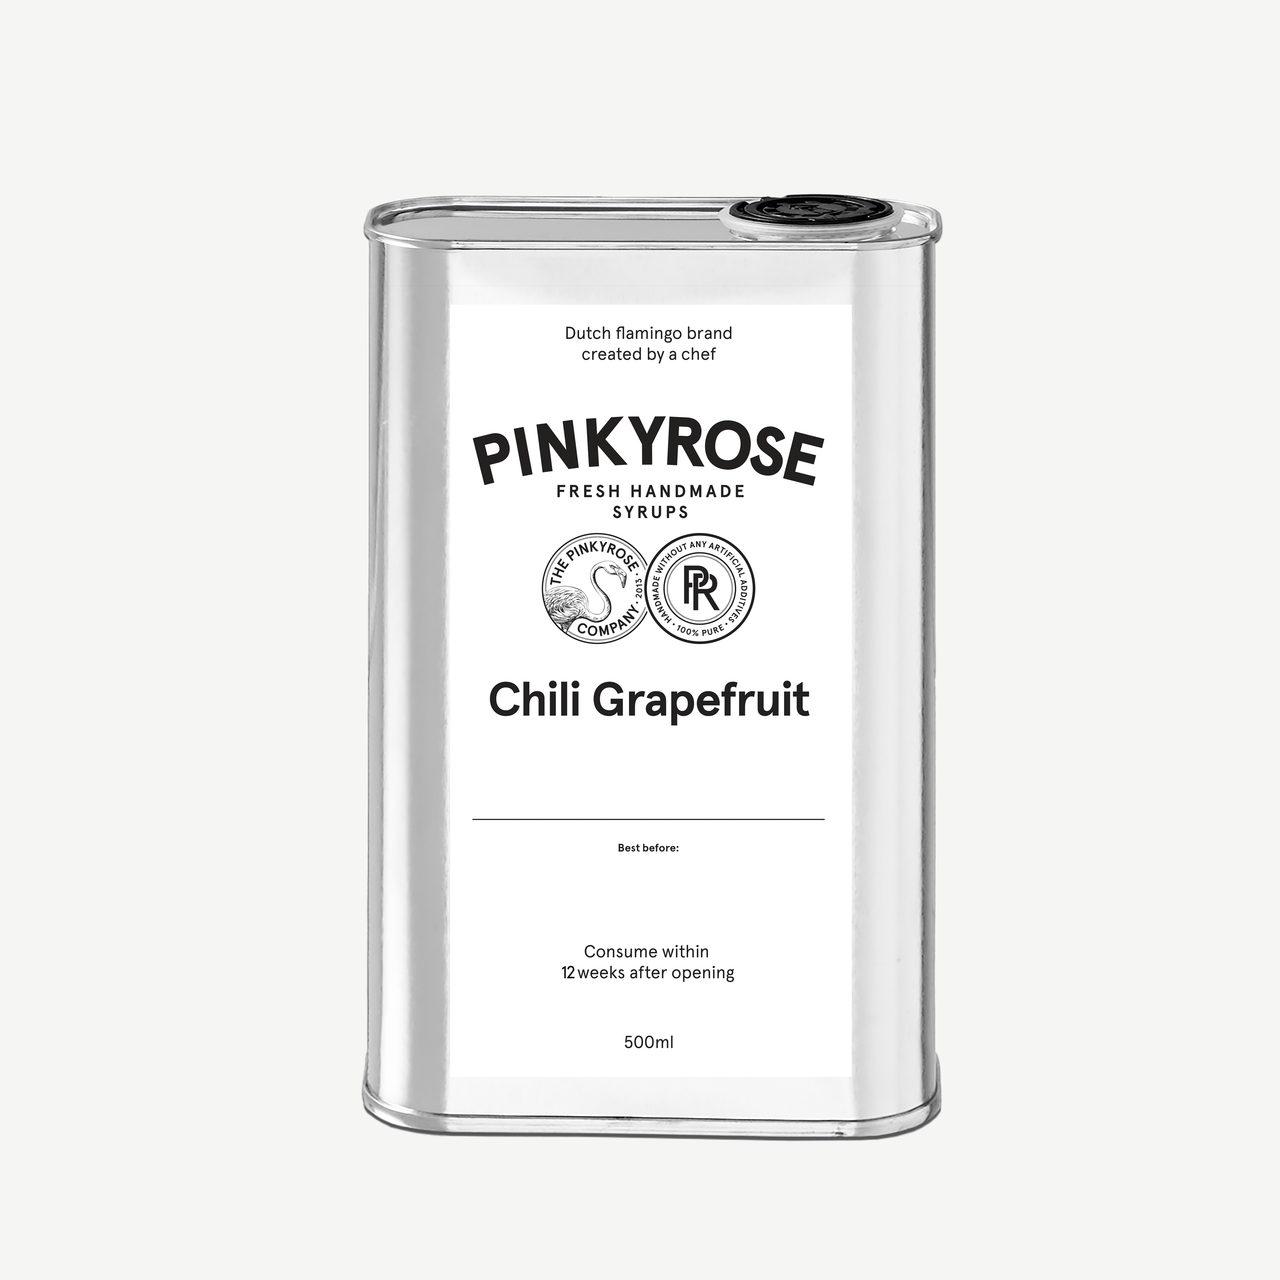 Chili Grapefruit